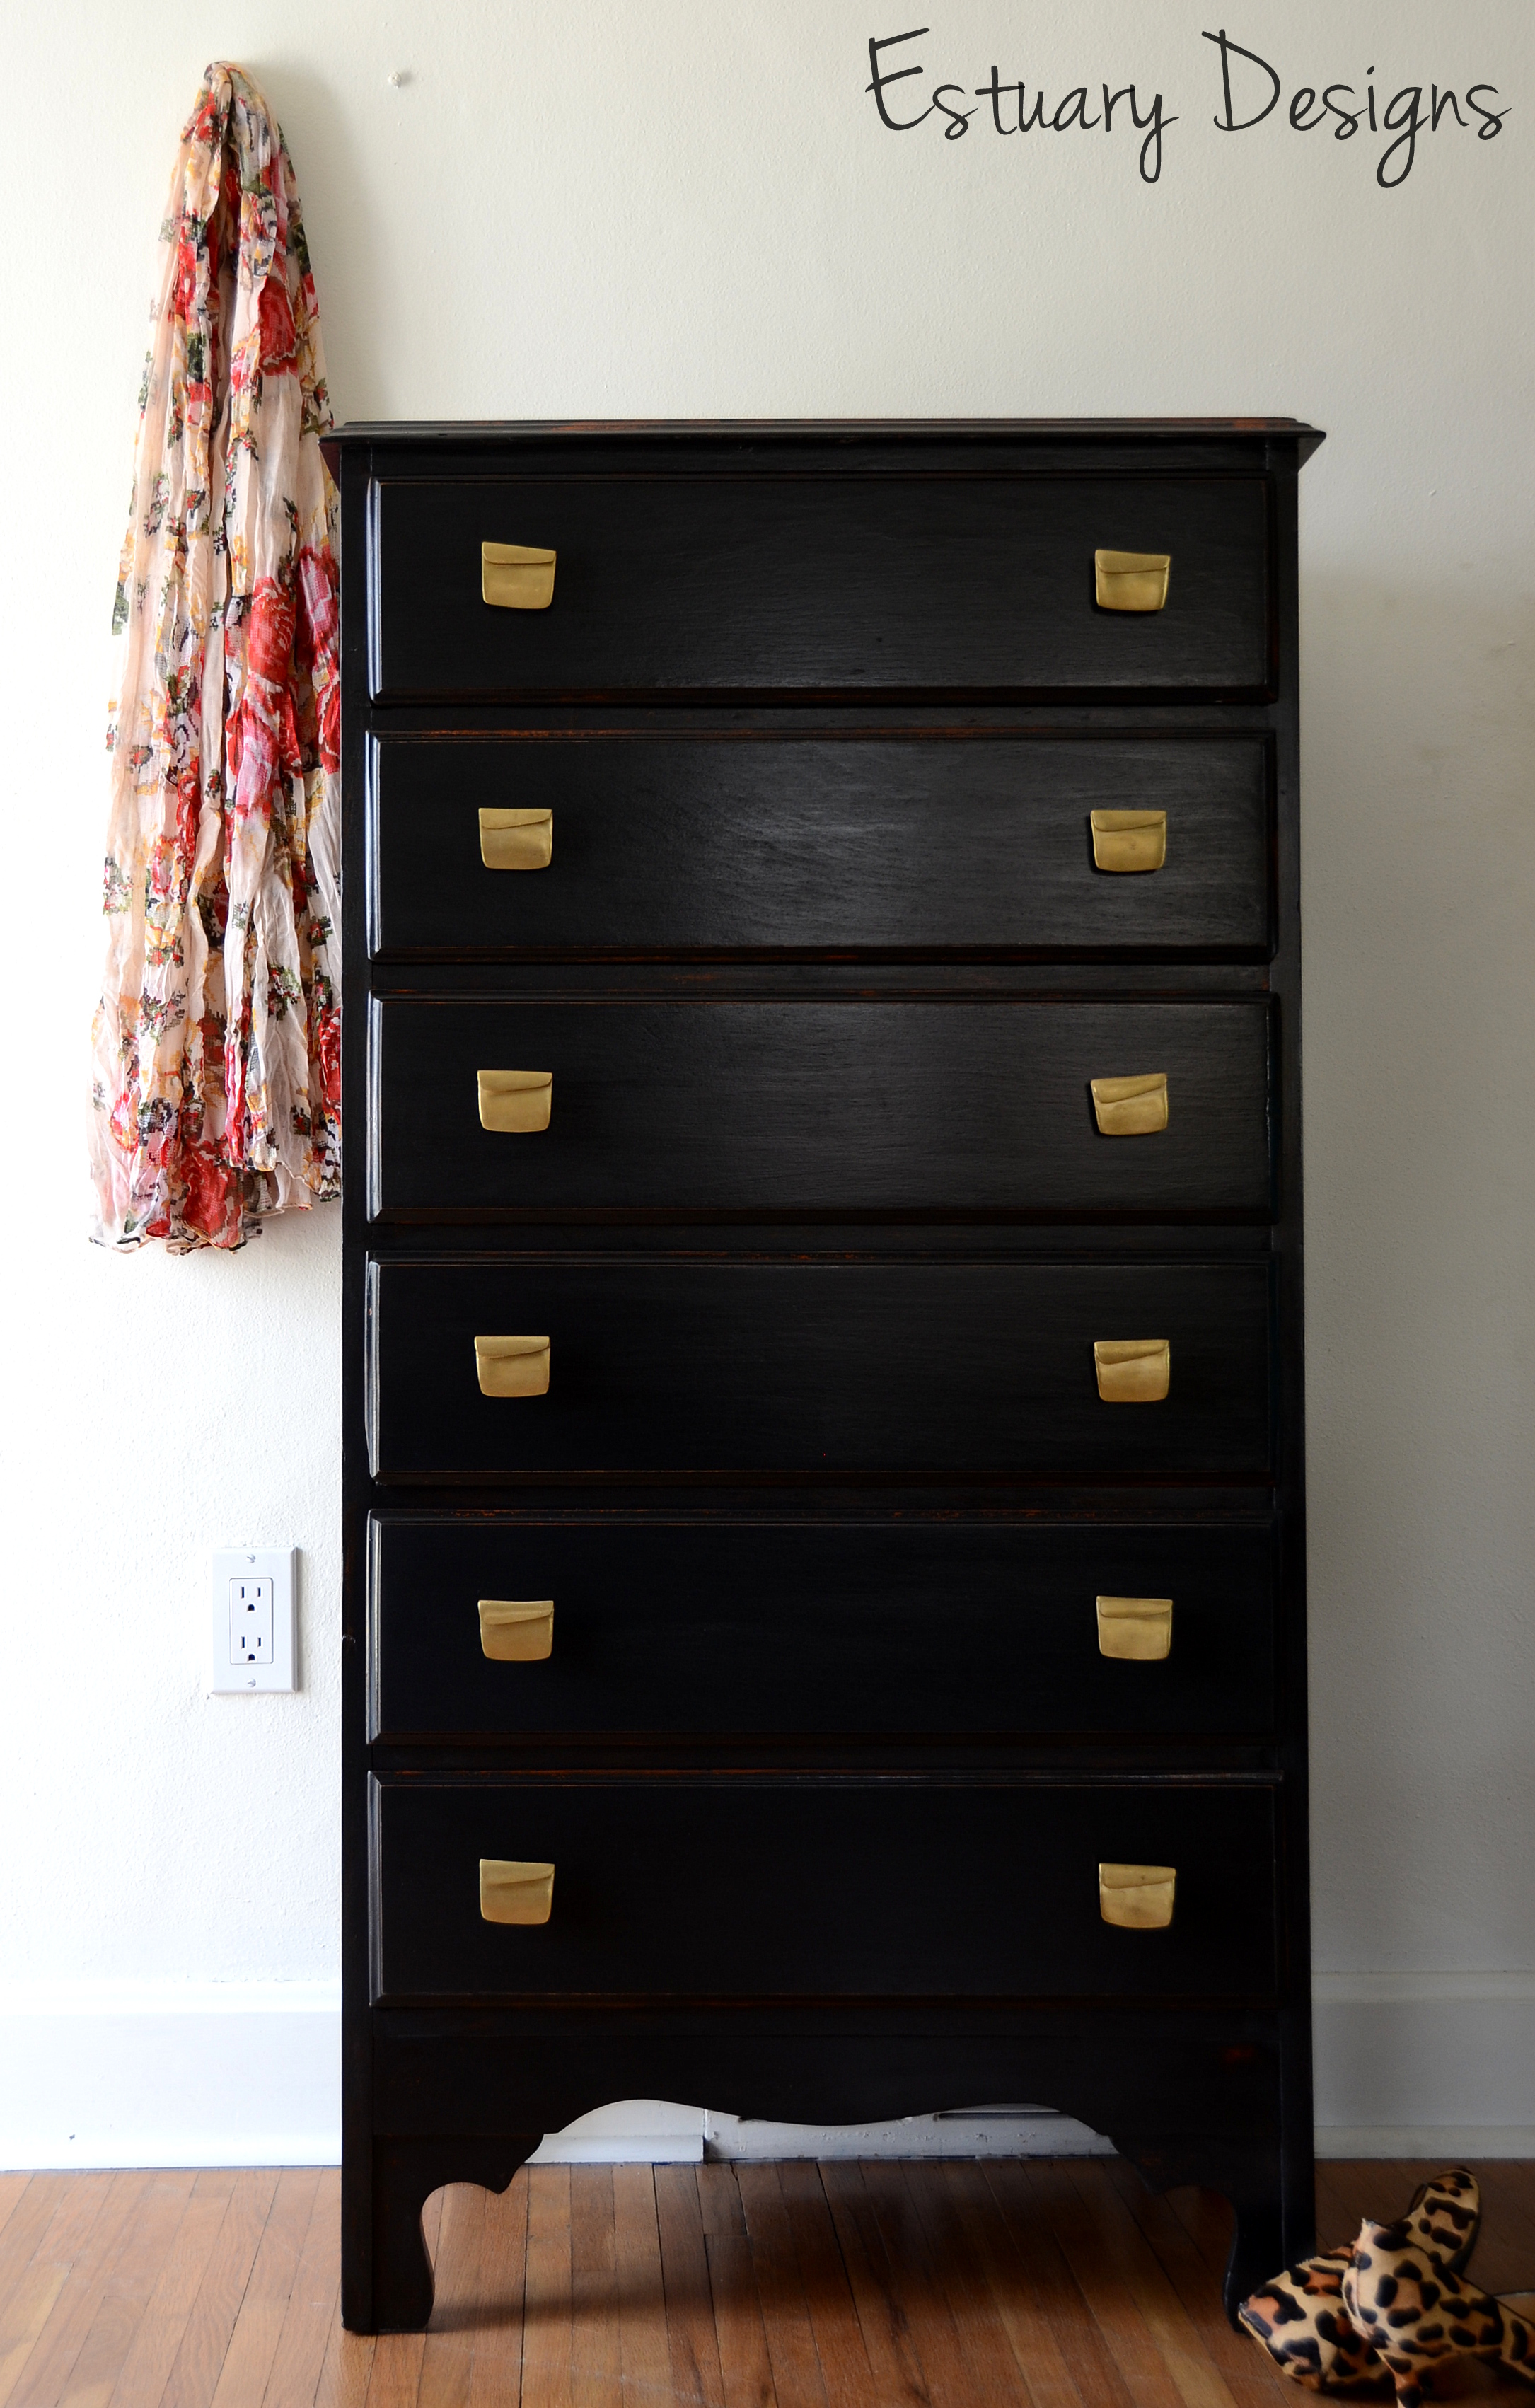 Debut Chest Of Drawers Hollywood Regency Style Estuary Designs - Black gloss chest of drawers